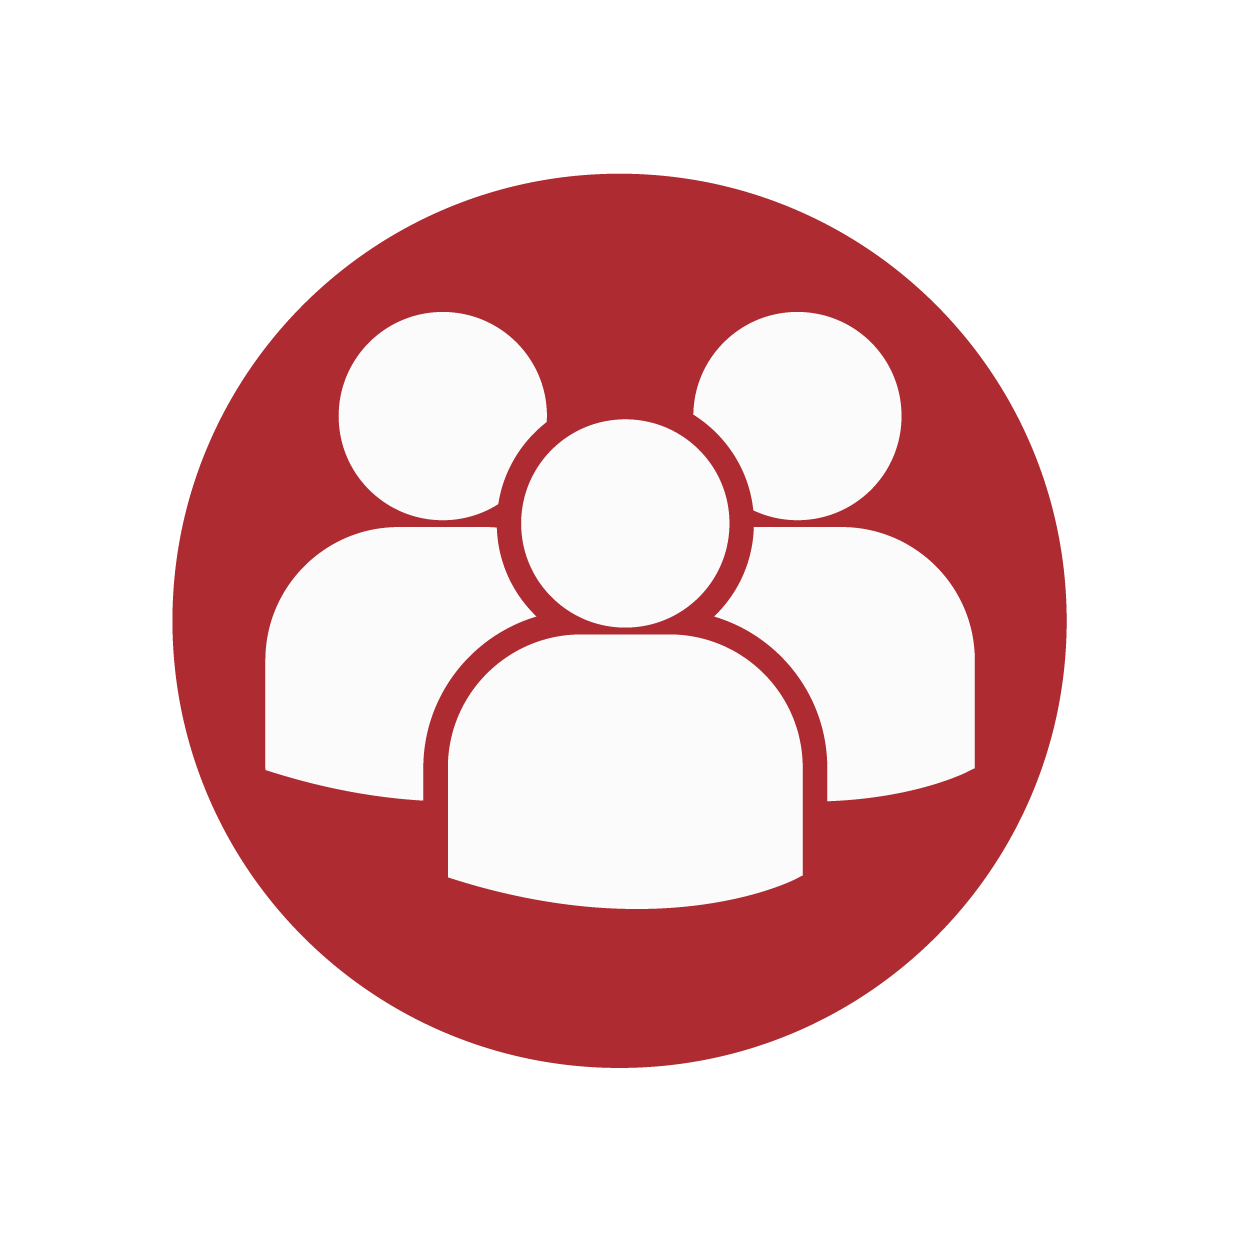 multiple-users-silhouette-01.png